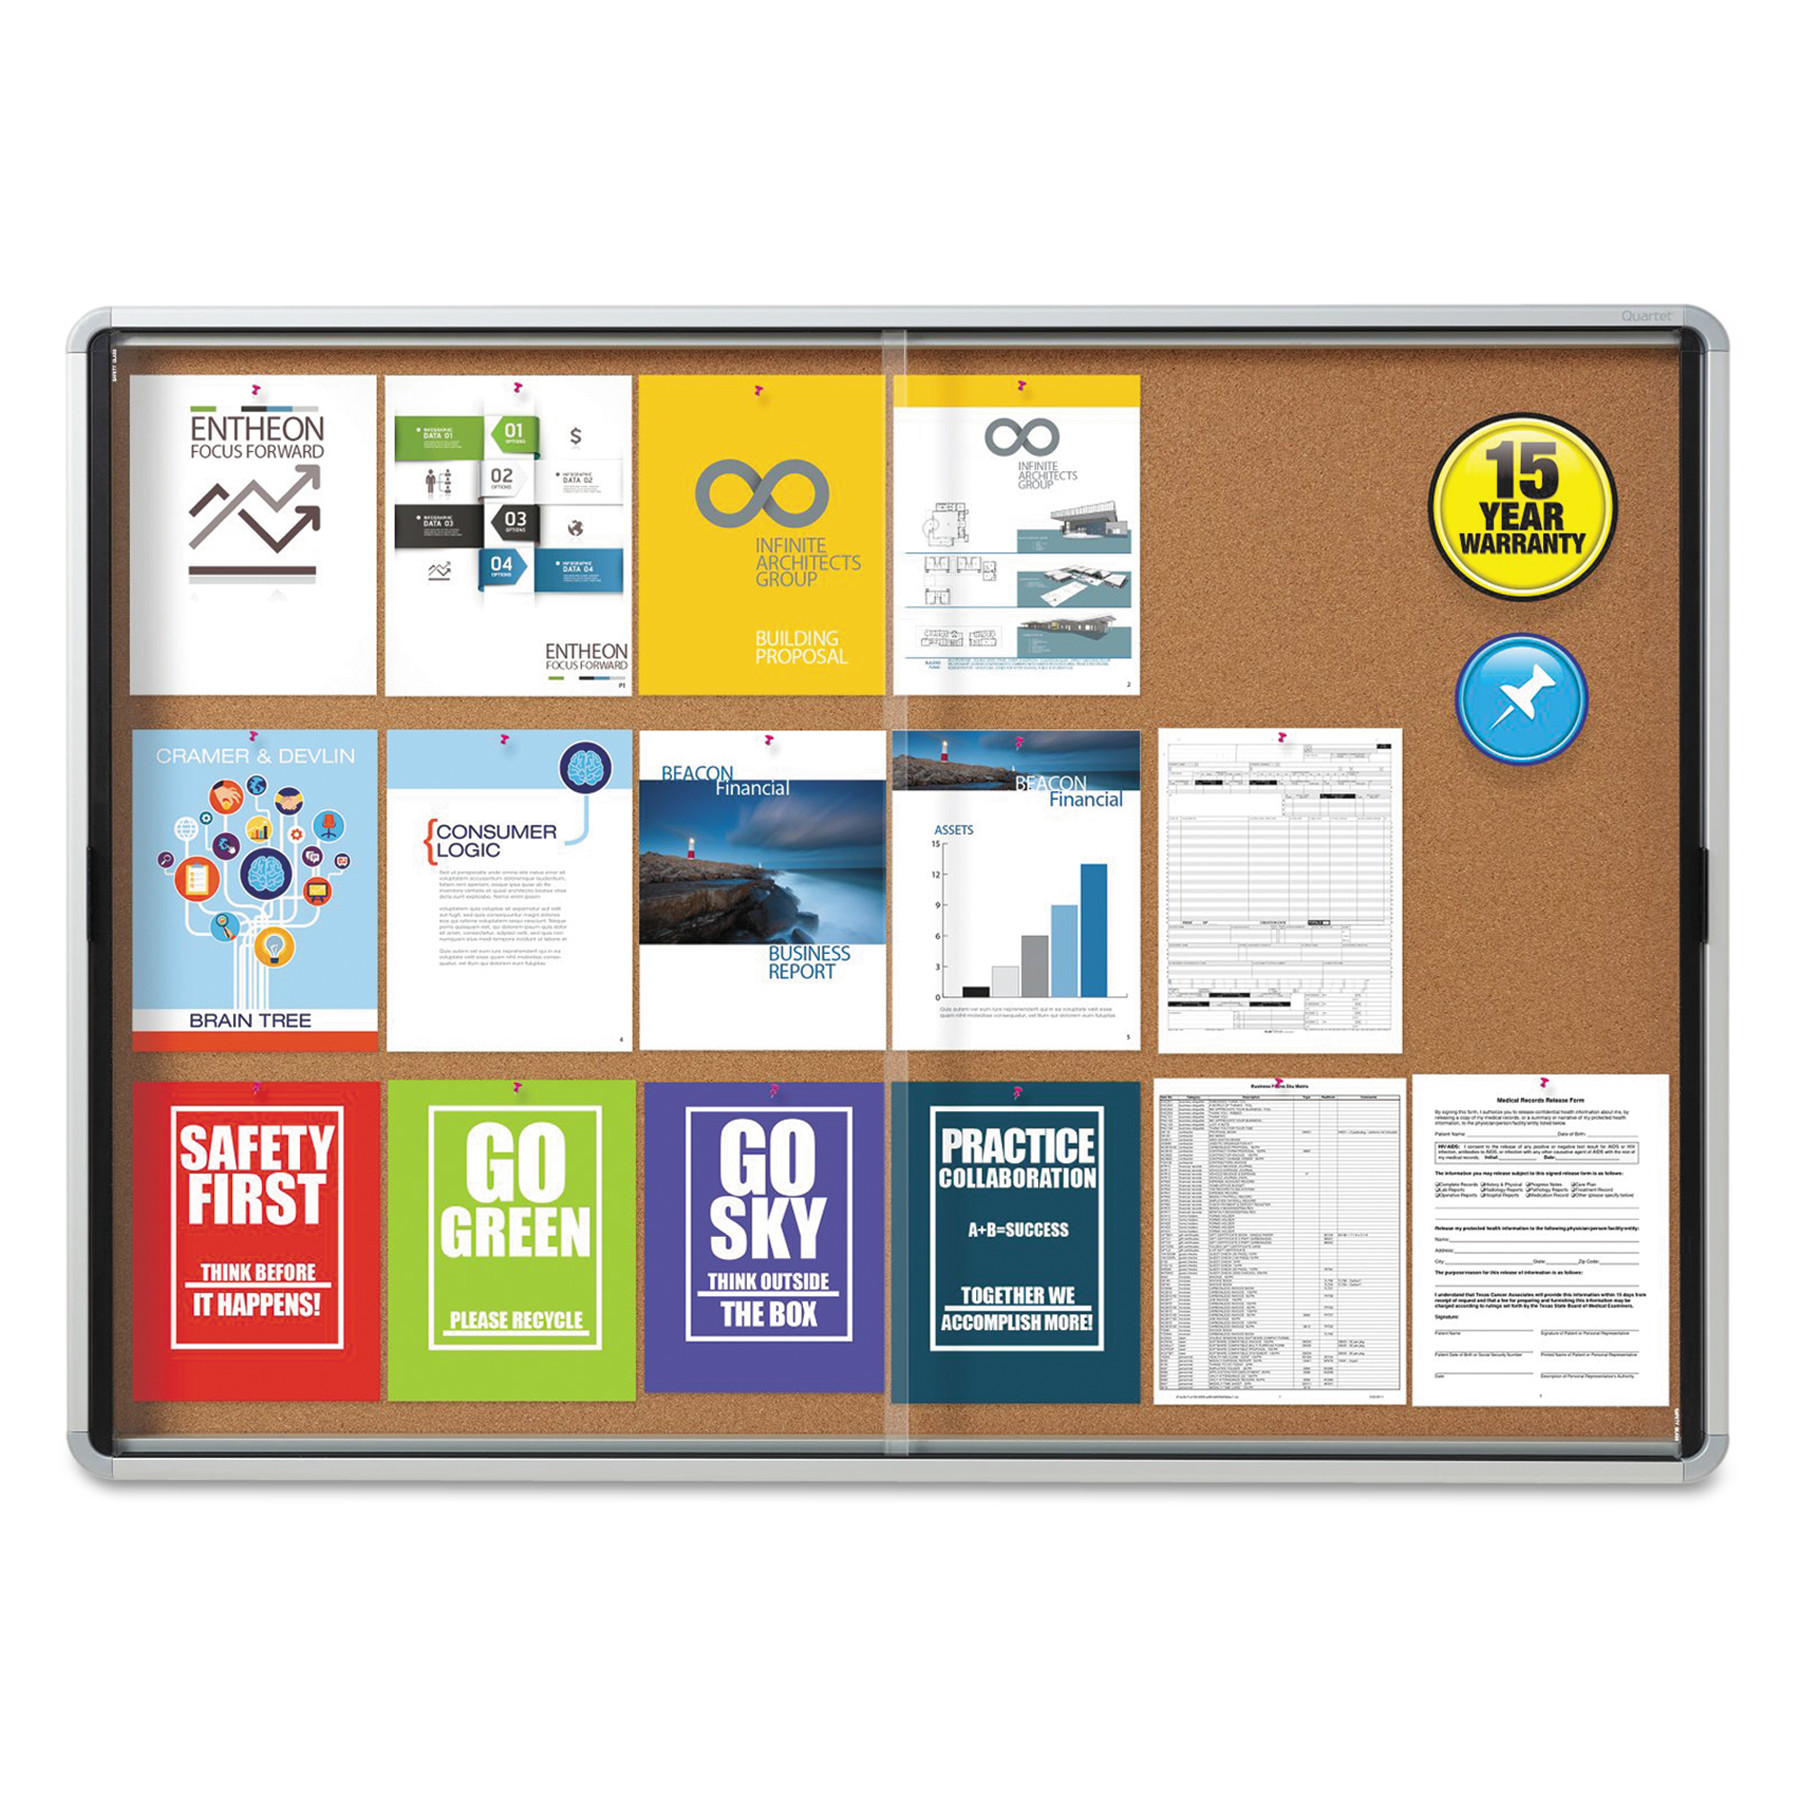 Quartet Enclosed Indoor Cork Bulletin Board w/Sliding Glass Doors, 56 x 39, Silver Frame -QRTEISC3956